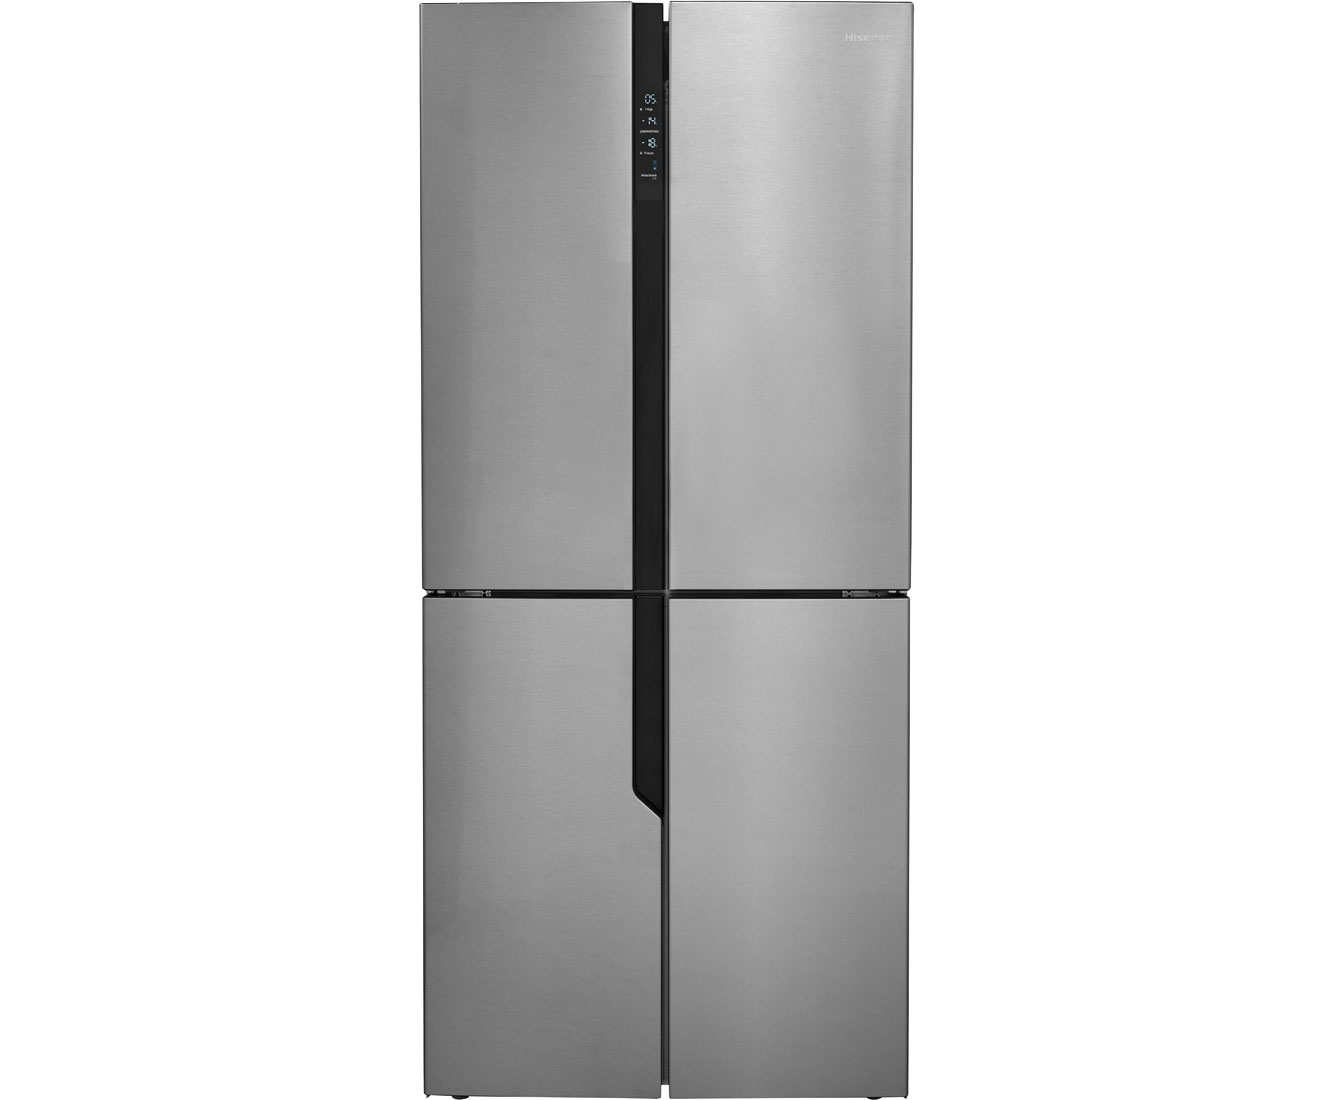 Hisense FMN432A20C American Fridge Freezer - Stainless Steel Look